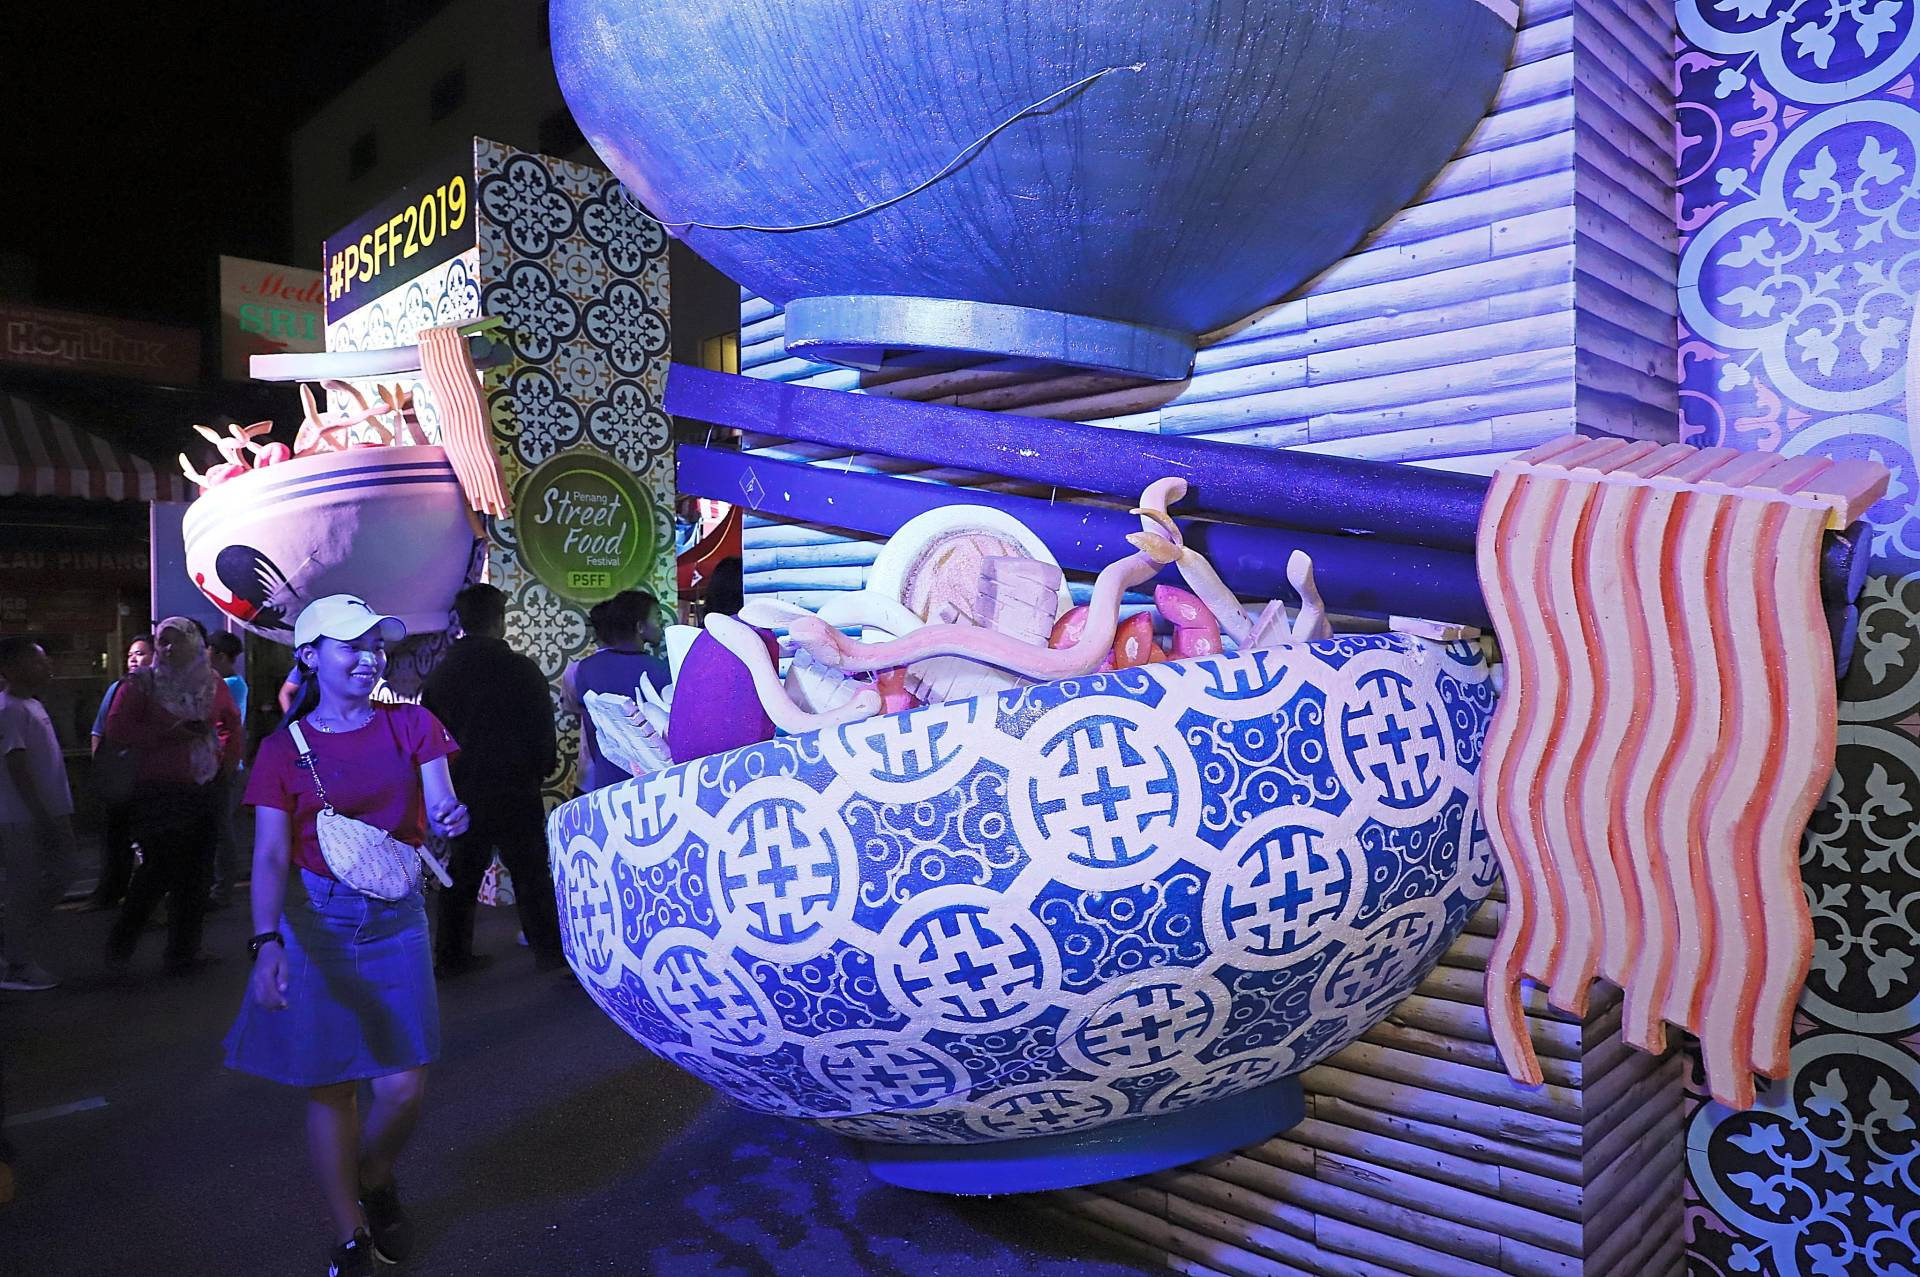 Sculptures of giant-sized bowls of noodles make interesting backdrop for selfies at the entrance to the Penang Street Food Festival 2019.